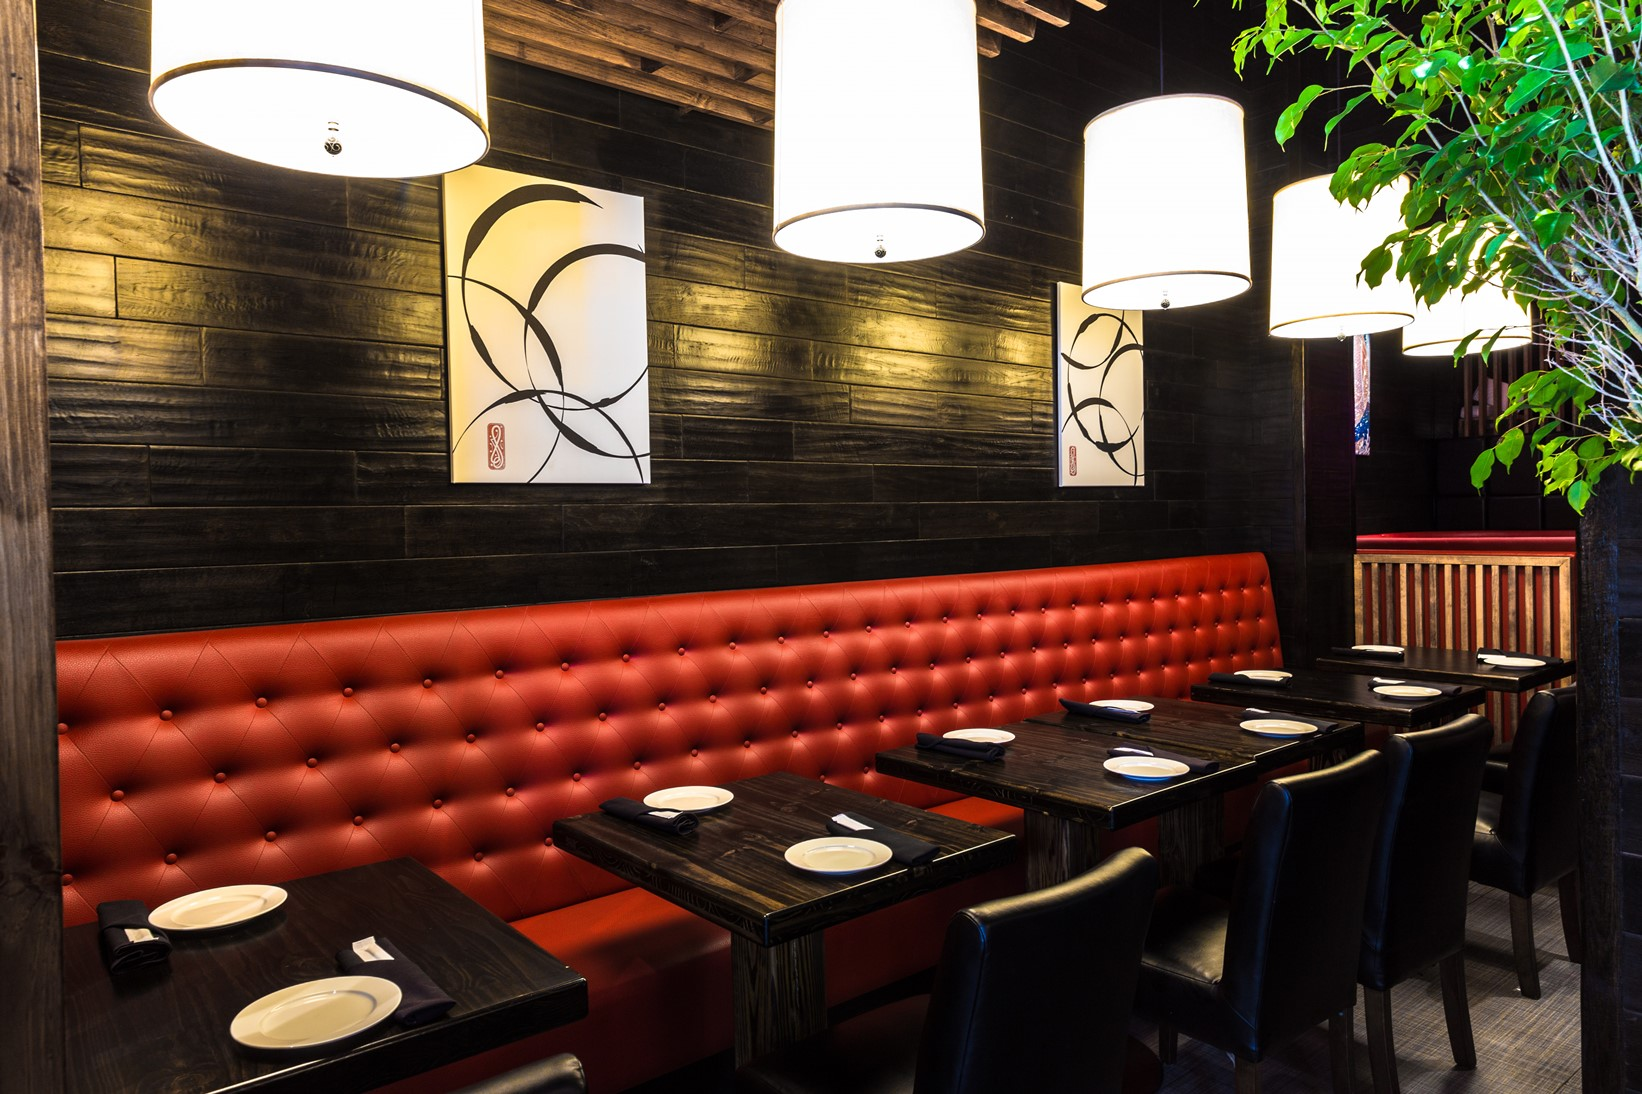 Take a step into the culinary world of fusion asian for Asian cuisine nyc